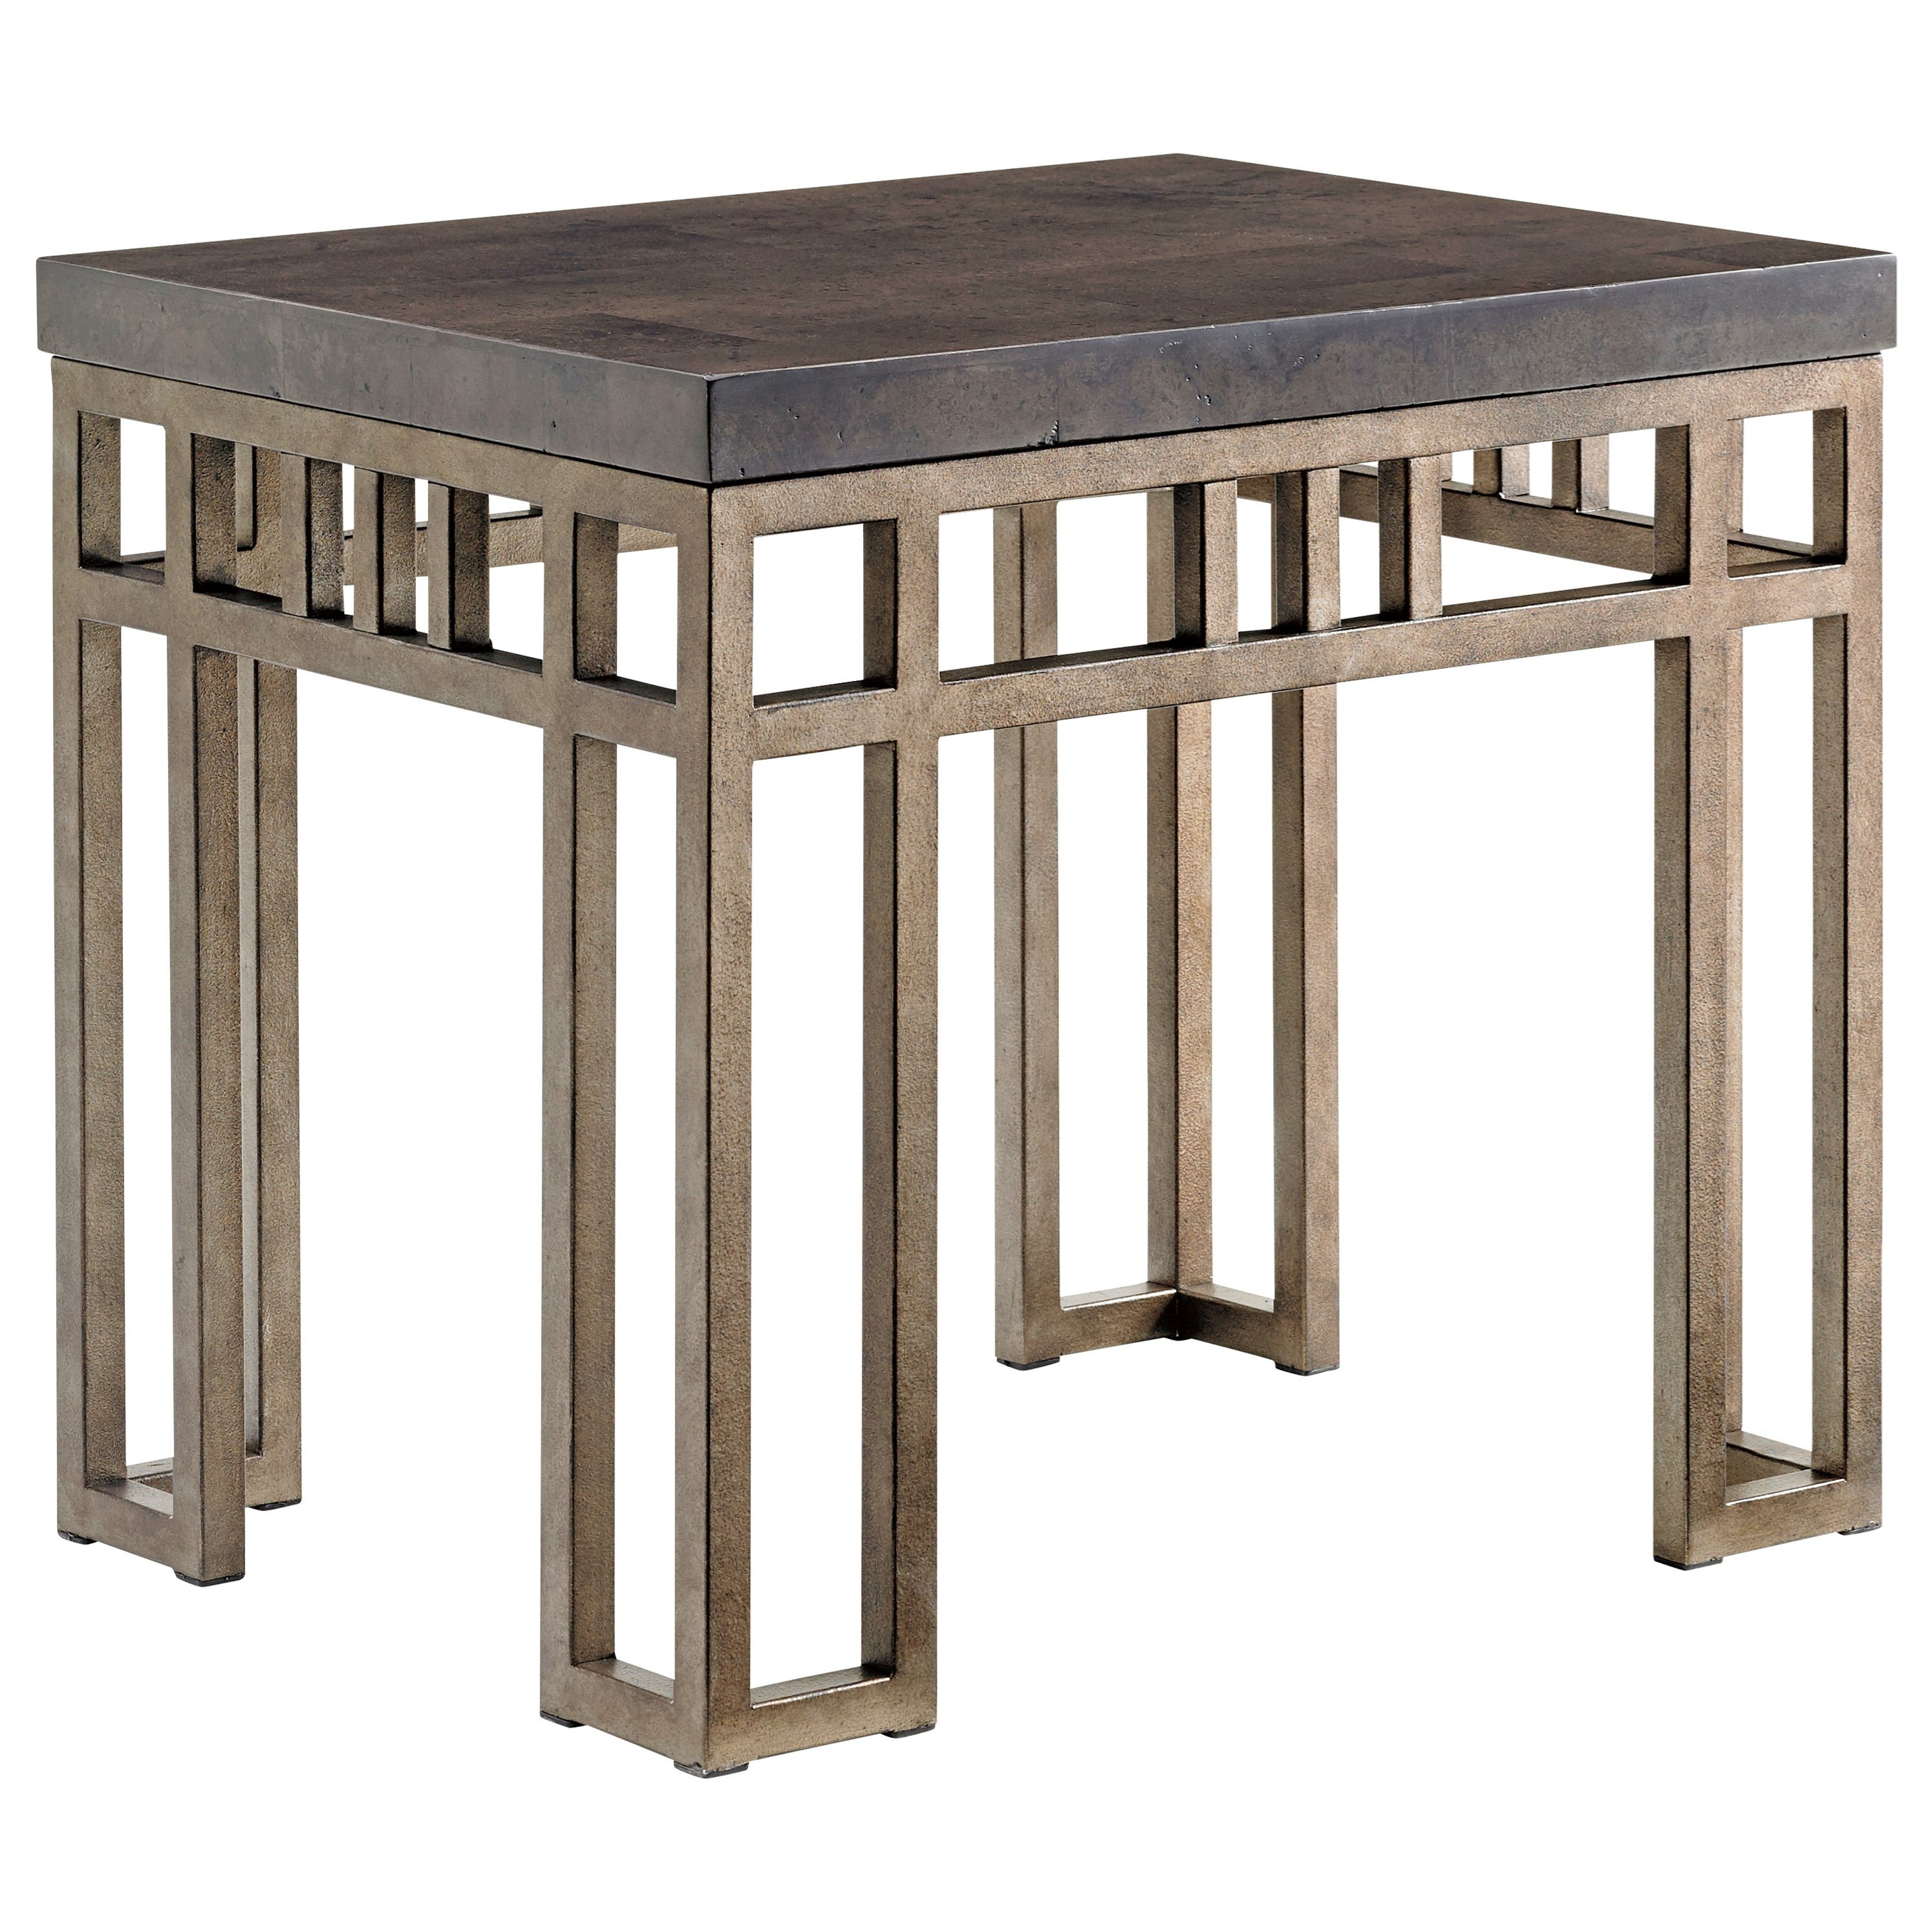 Cypress Point Montera Travertine End Table by Tommy Bahama Home at Baer's Furniture